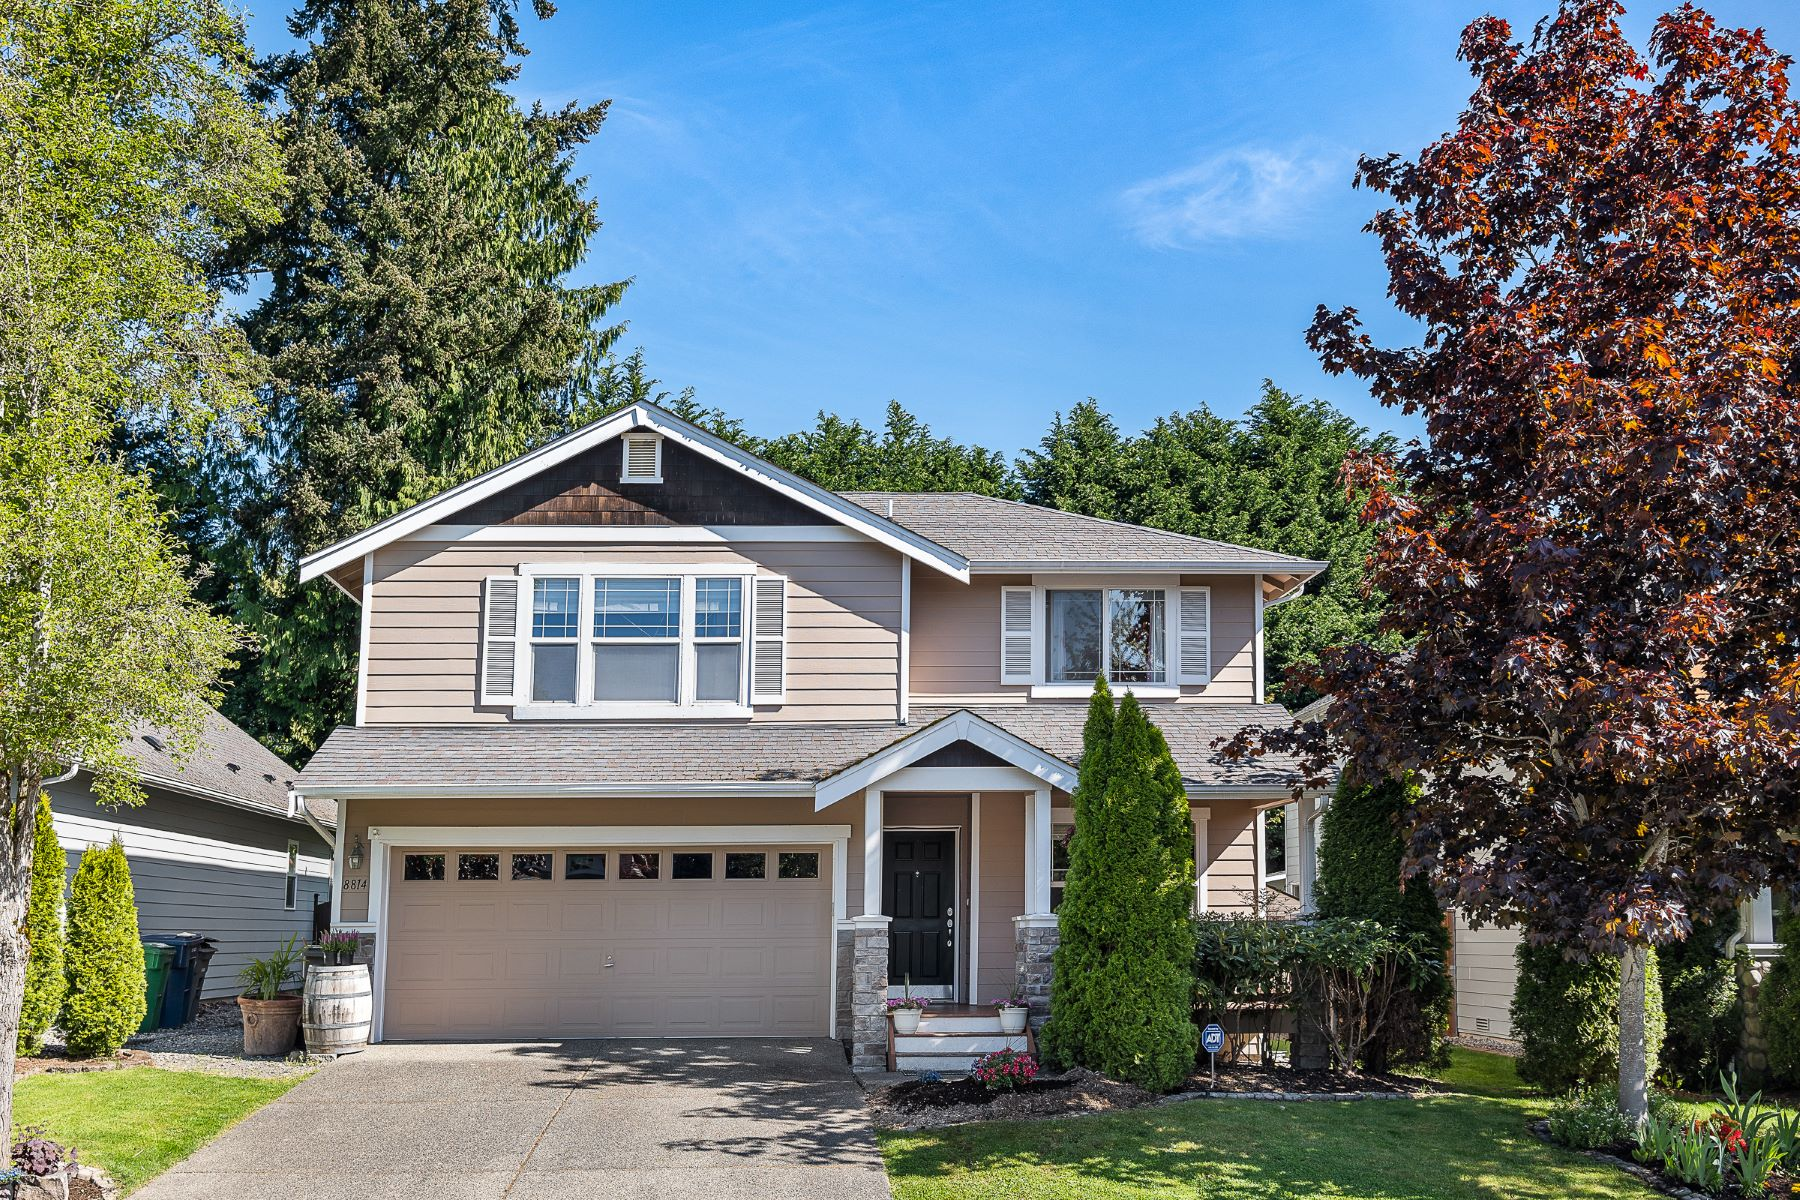 Single Family Homes for Sale at Westhill Home 8814 NE 178th St, Bothell, Washington 98011 United States